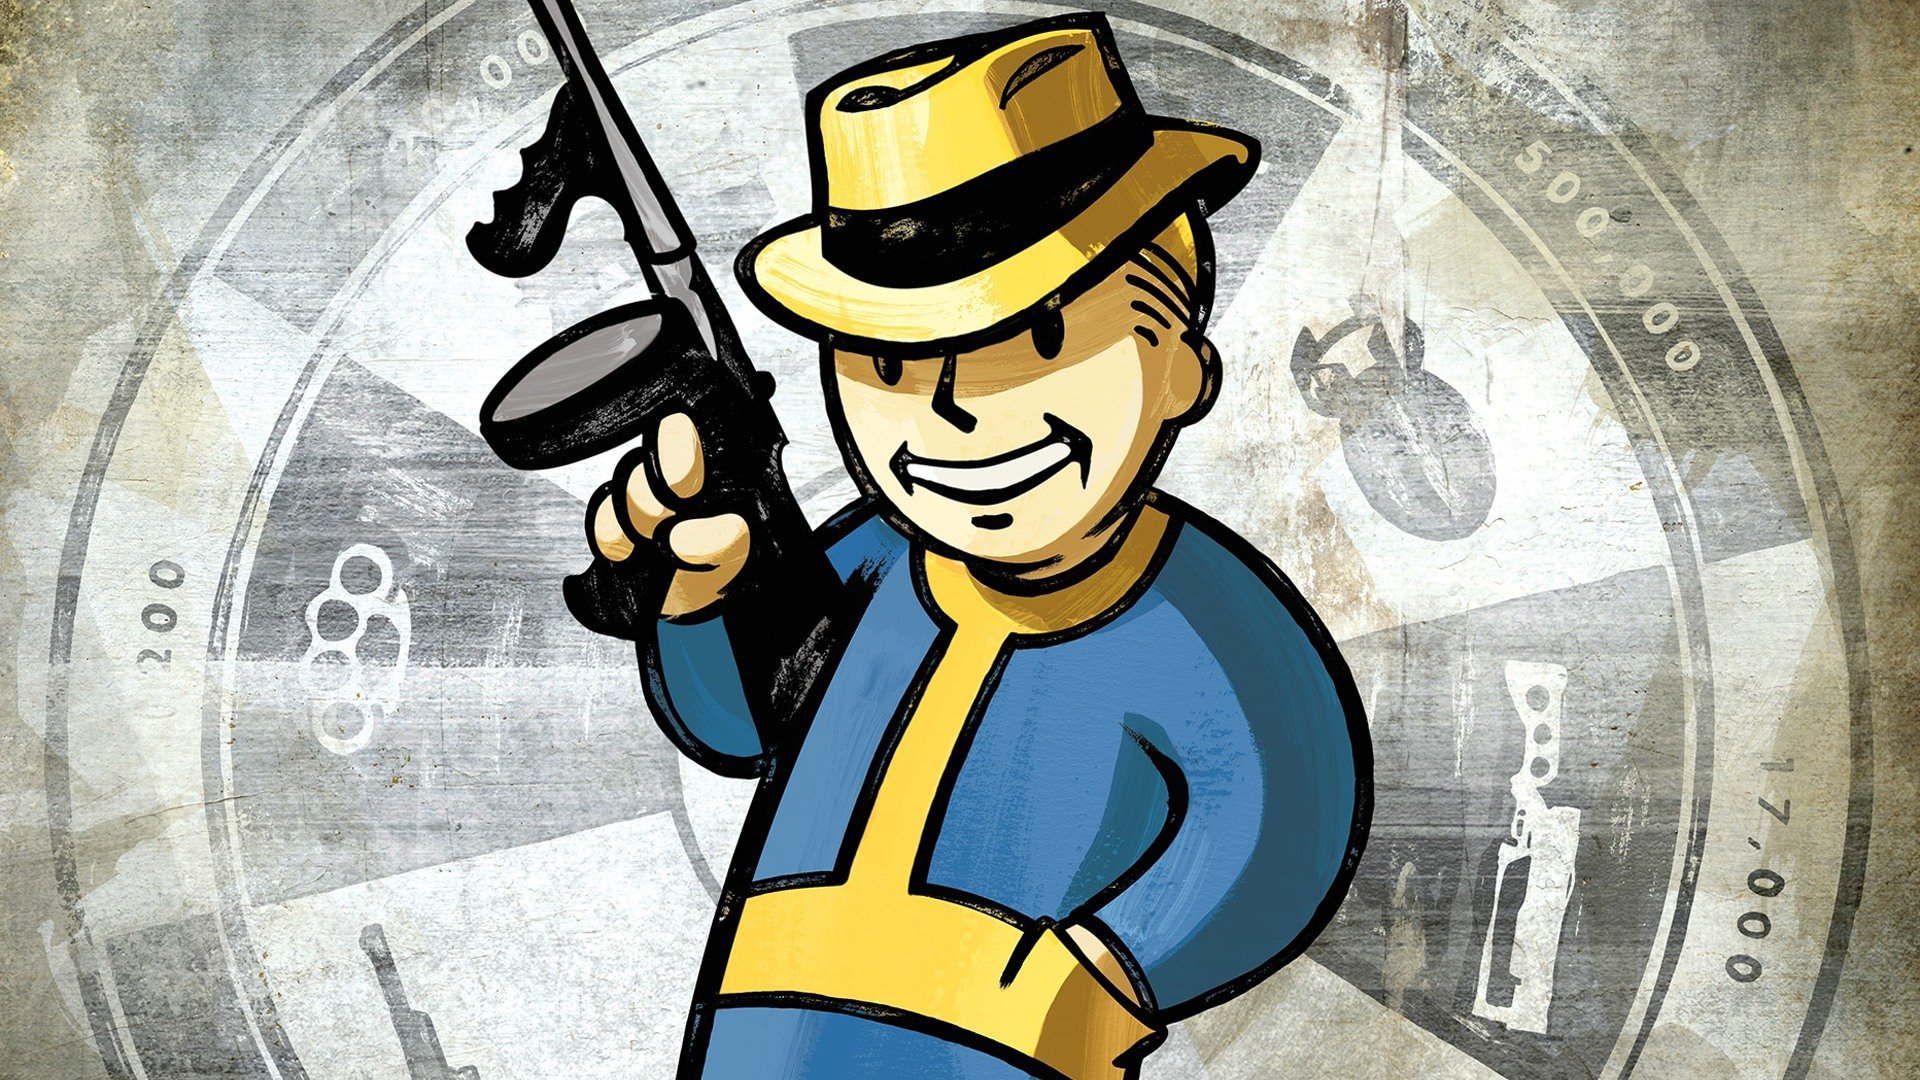 Vault Boy Wallpaper